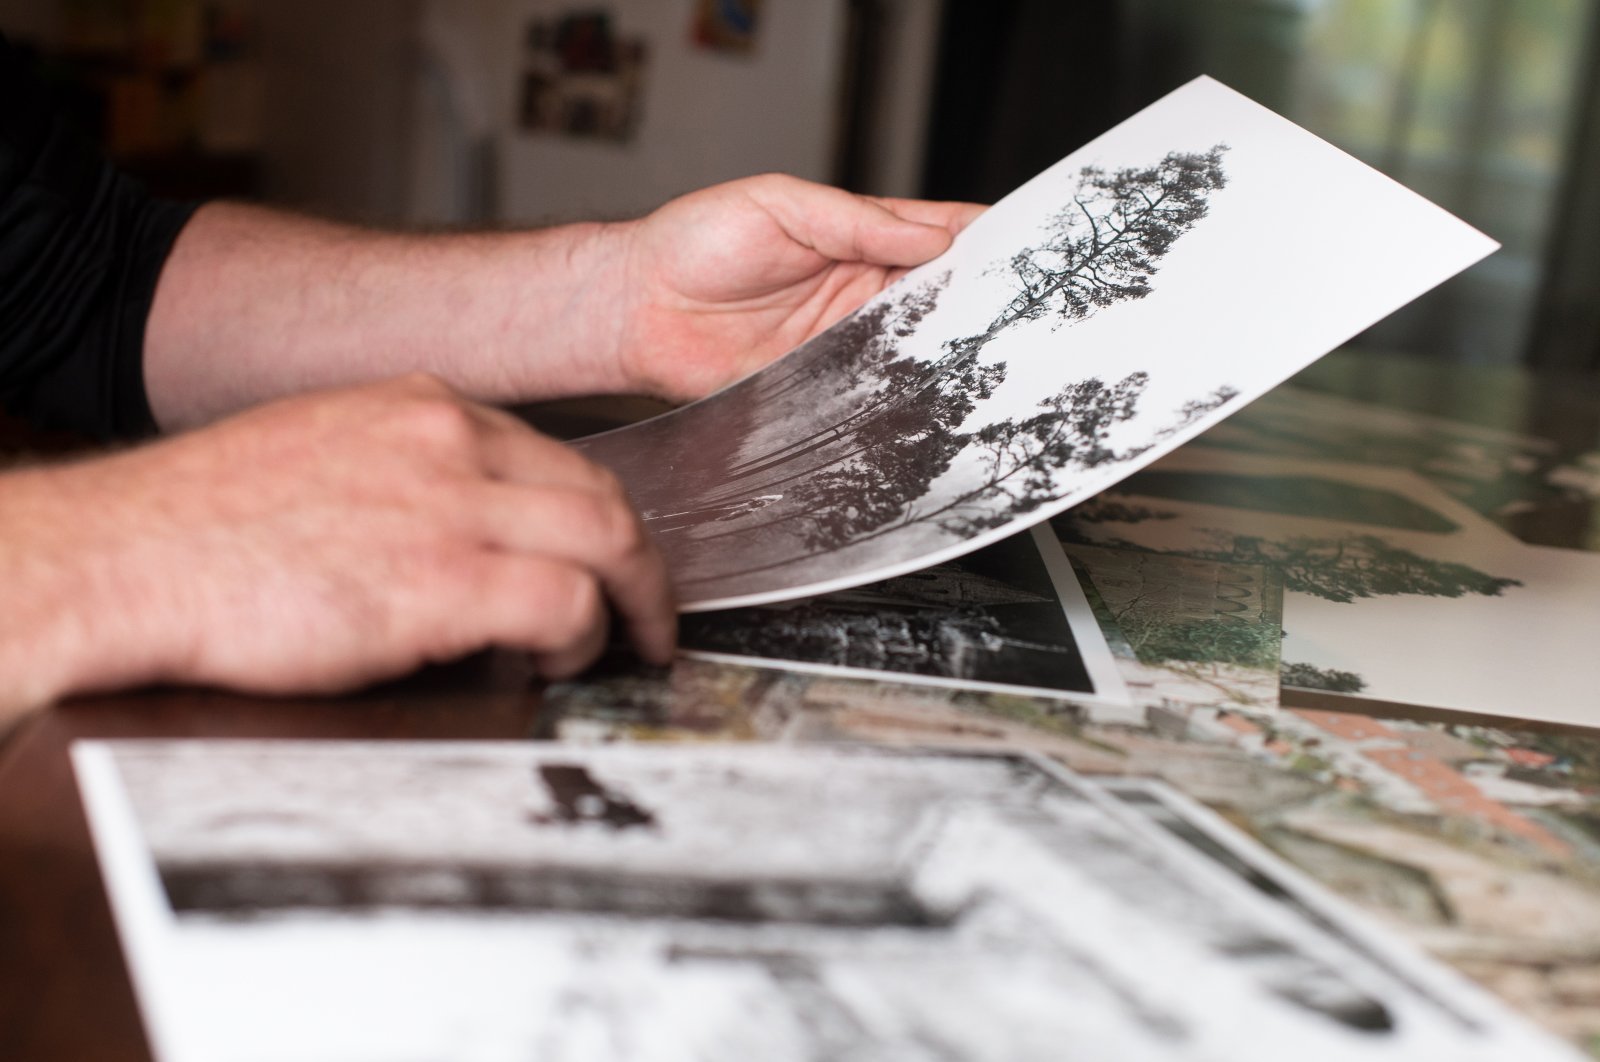 Digital photos take on a completely different quality when you print them out on paper. (DPA Photo)